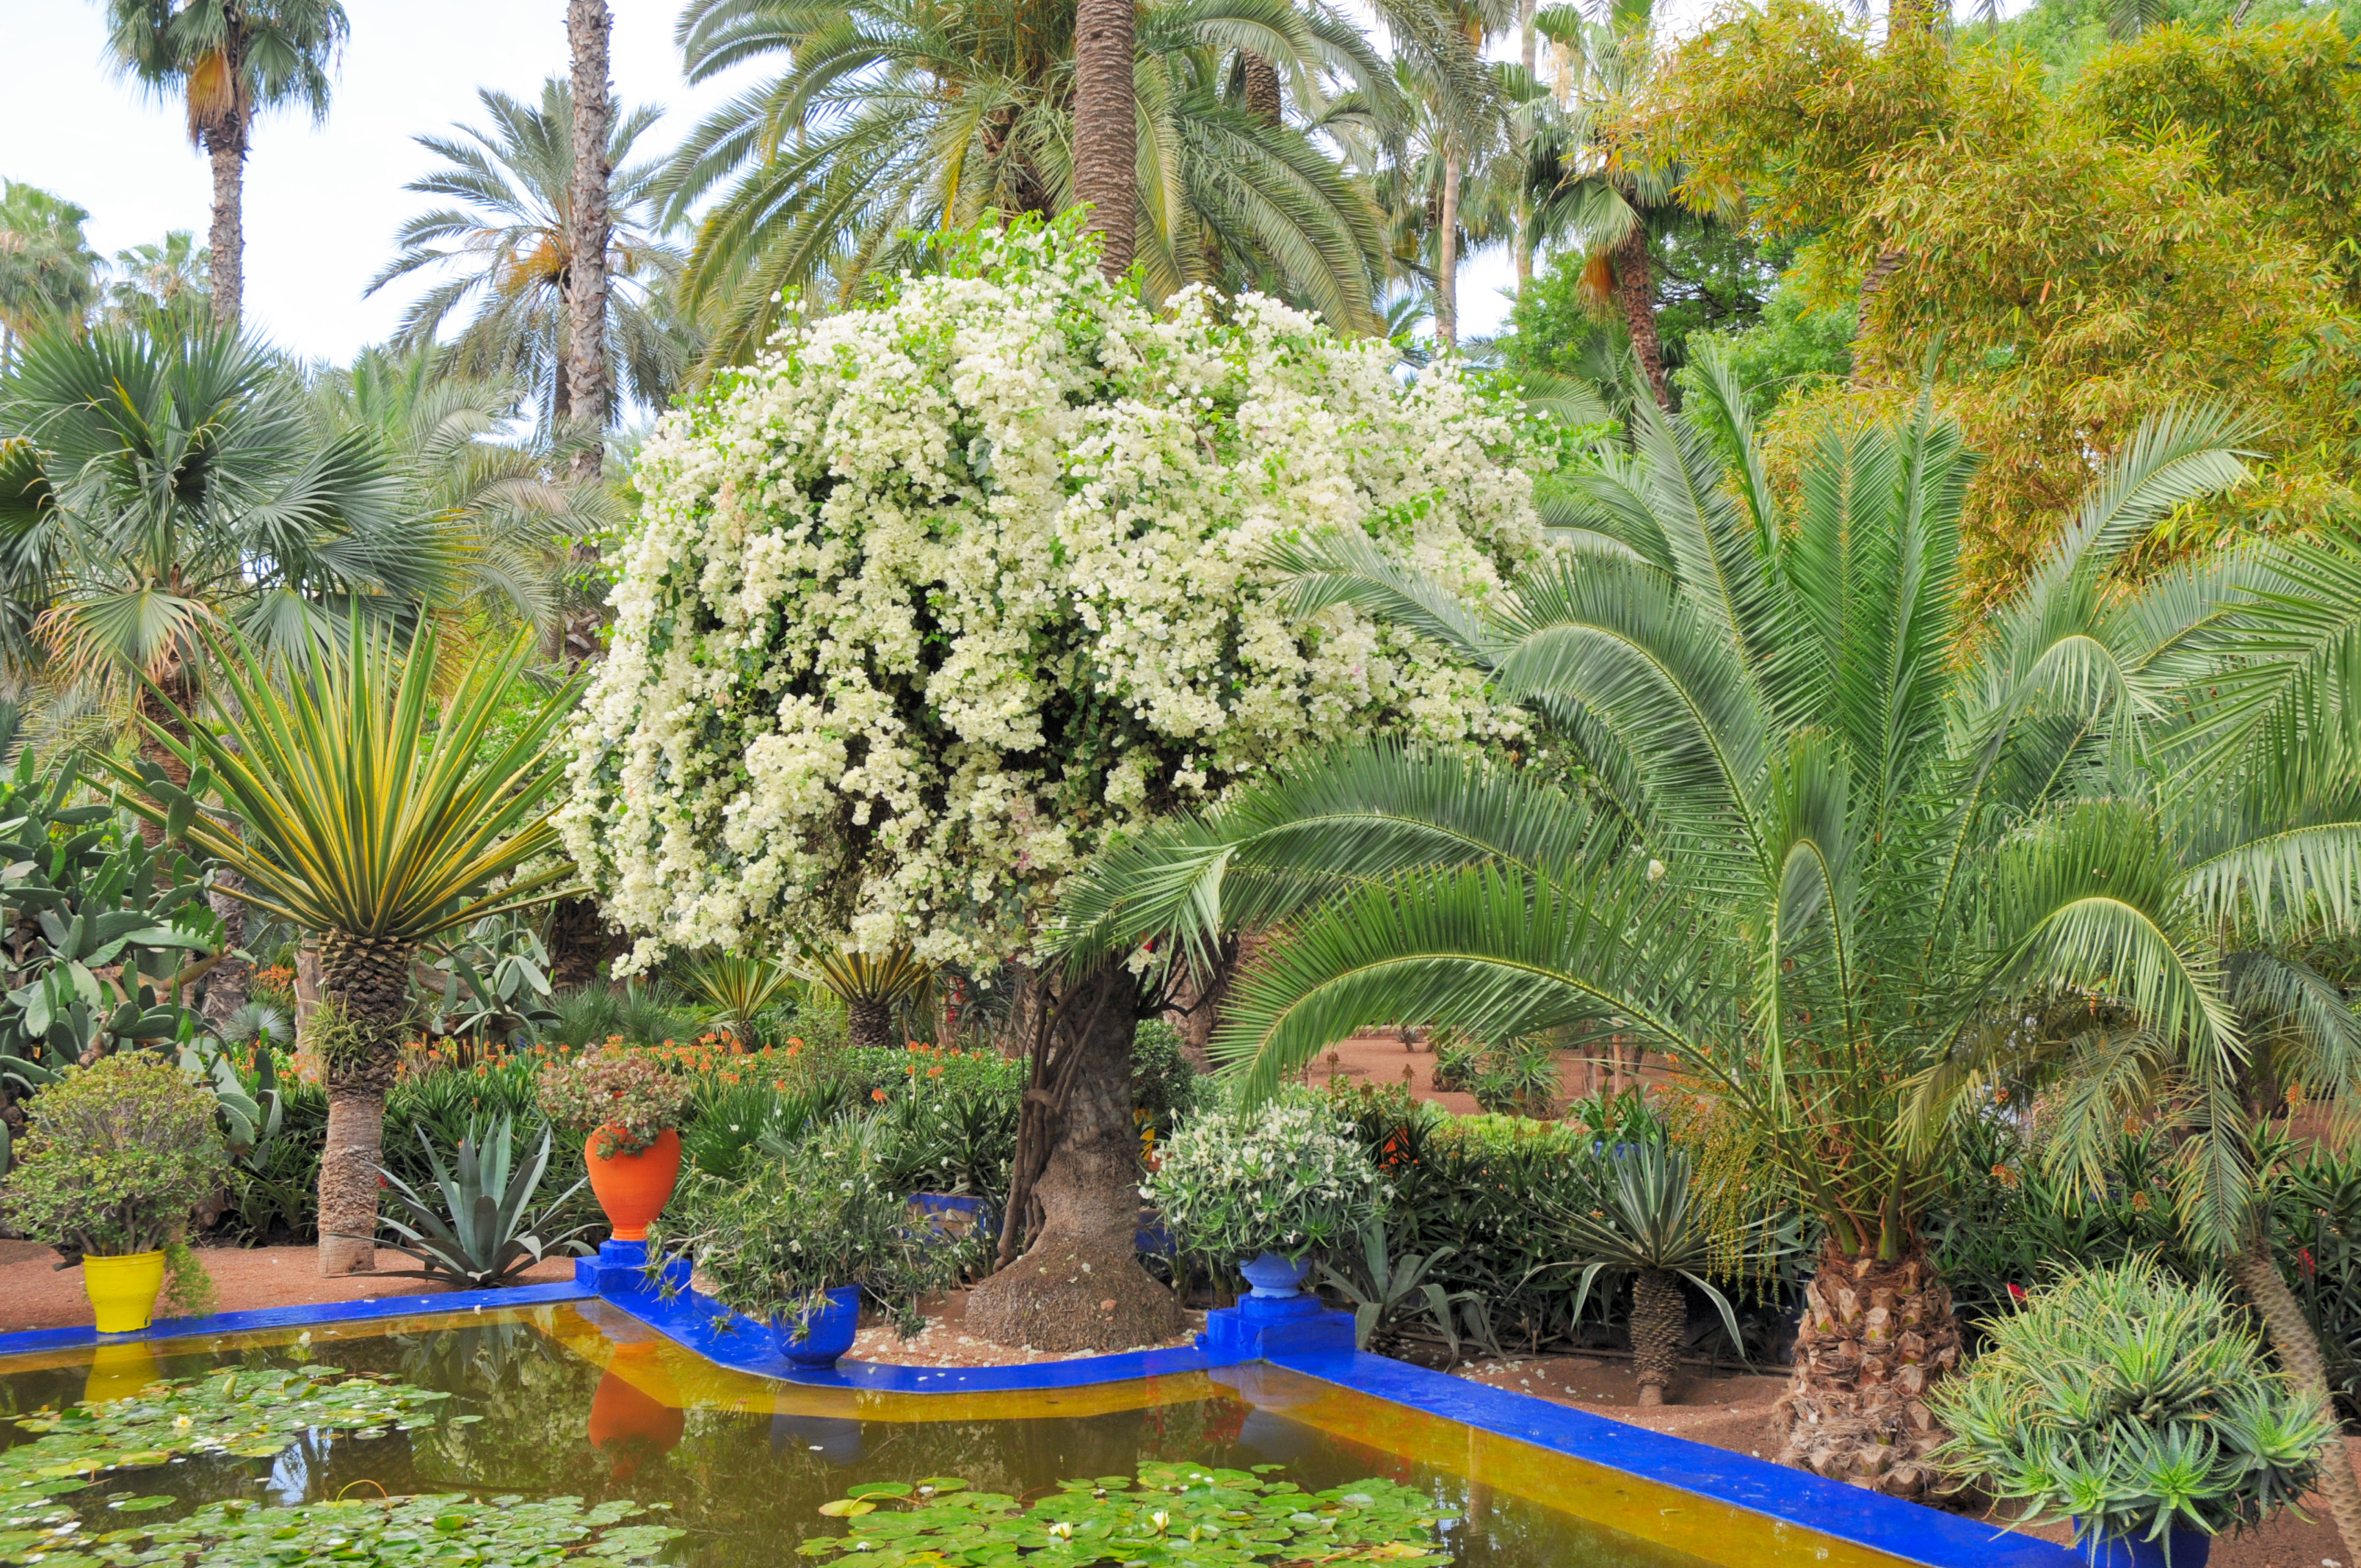 file le jardin des majorelle 15 jpg wikimedia commons. Black Bedroom Furniture Sets. Home Design Ideas